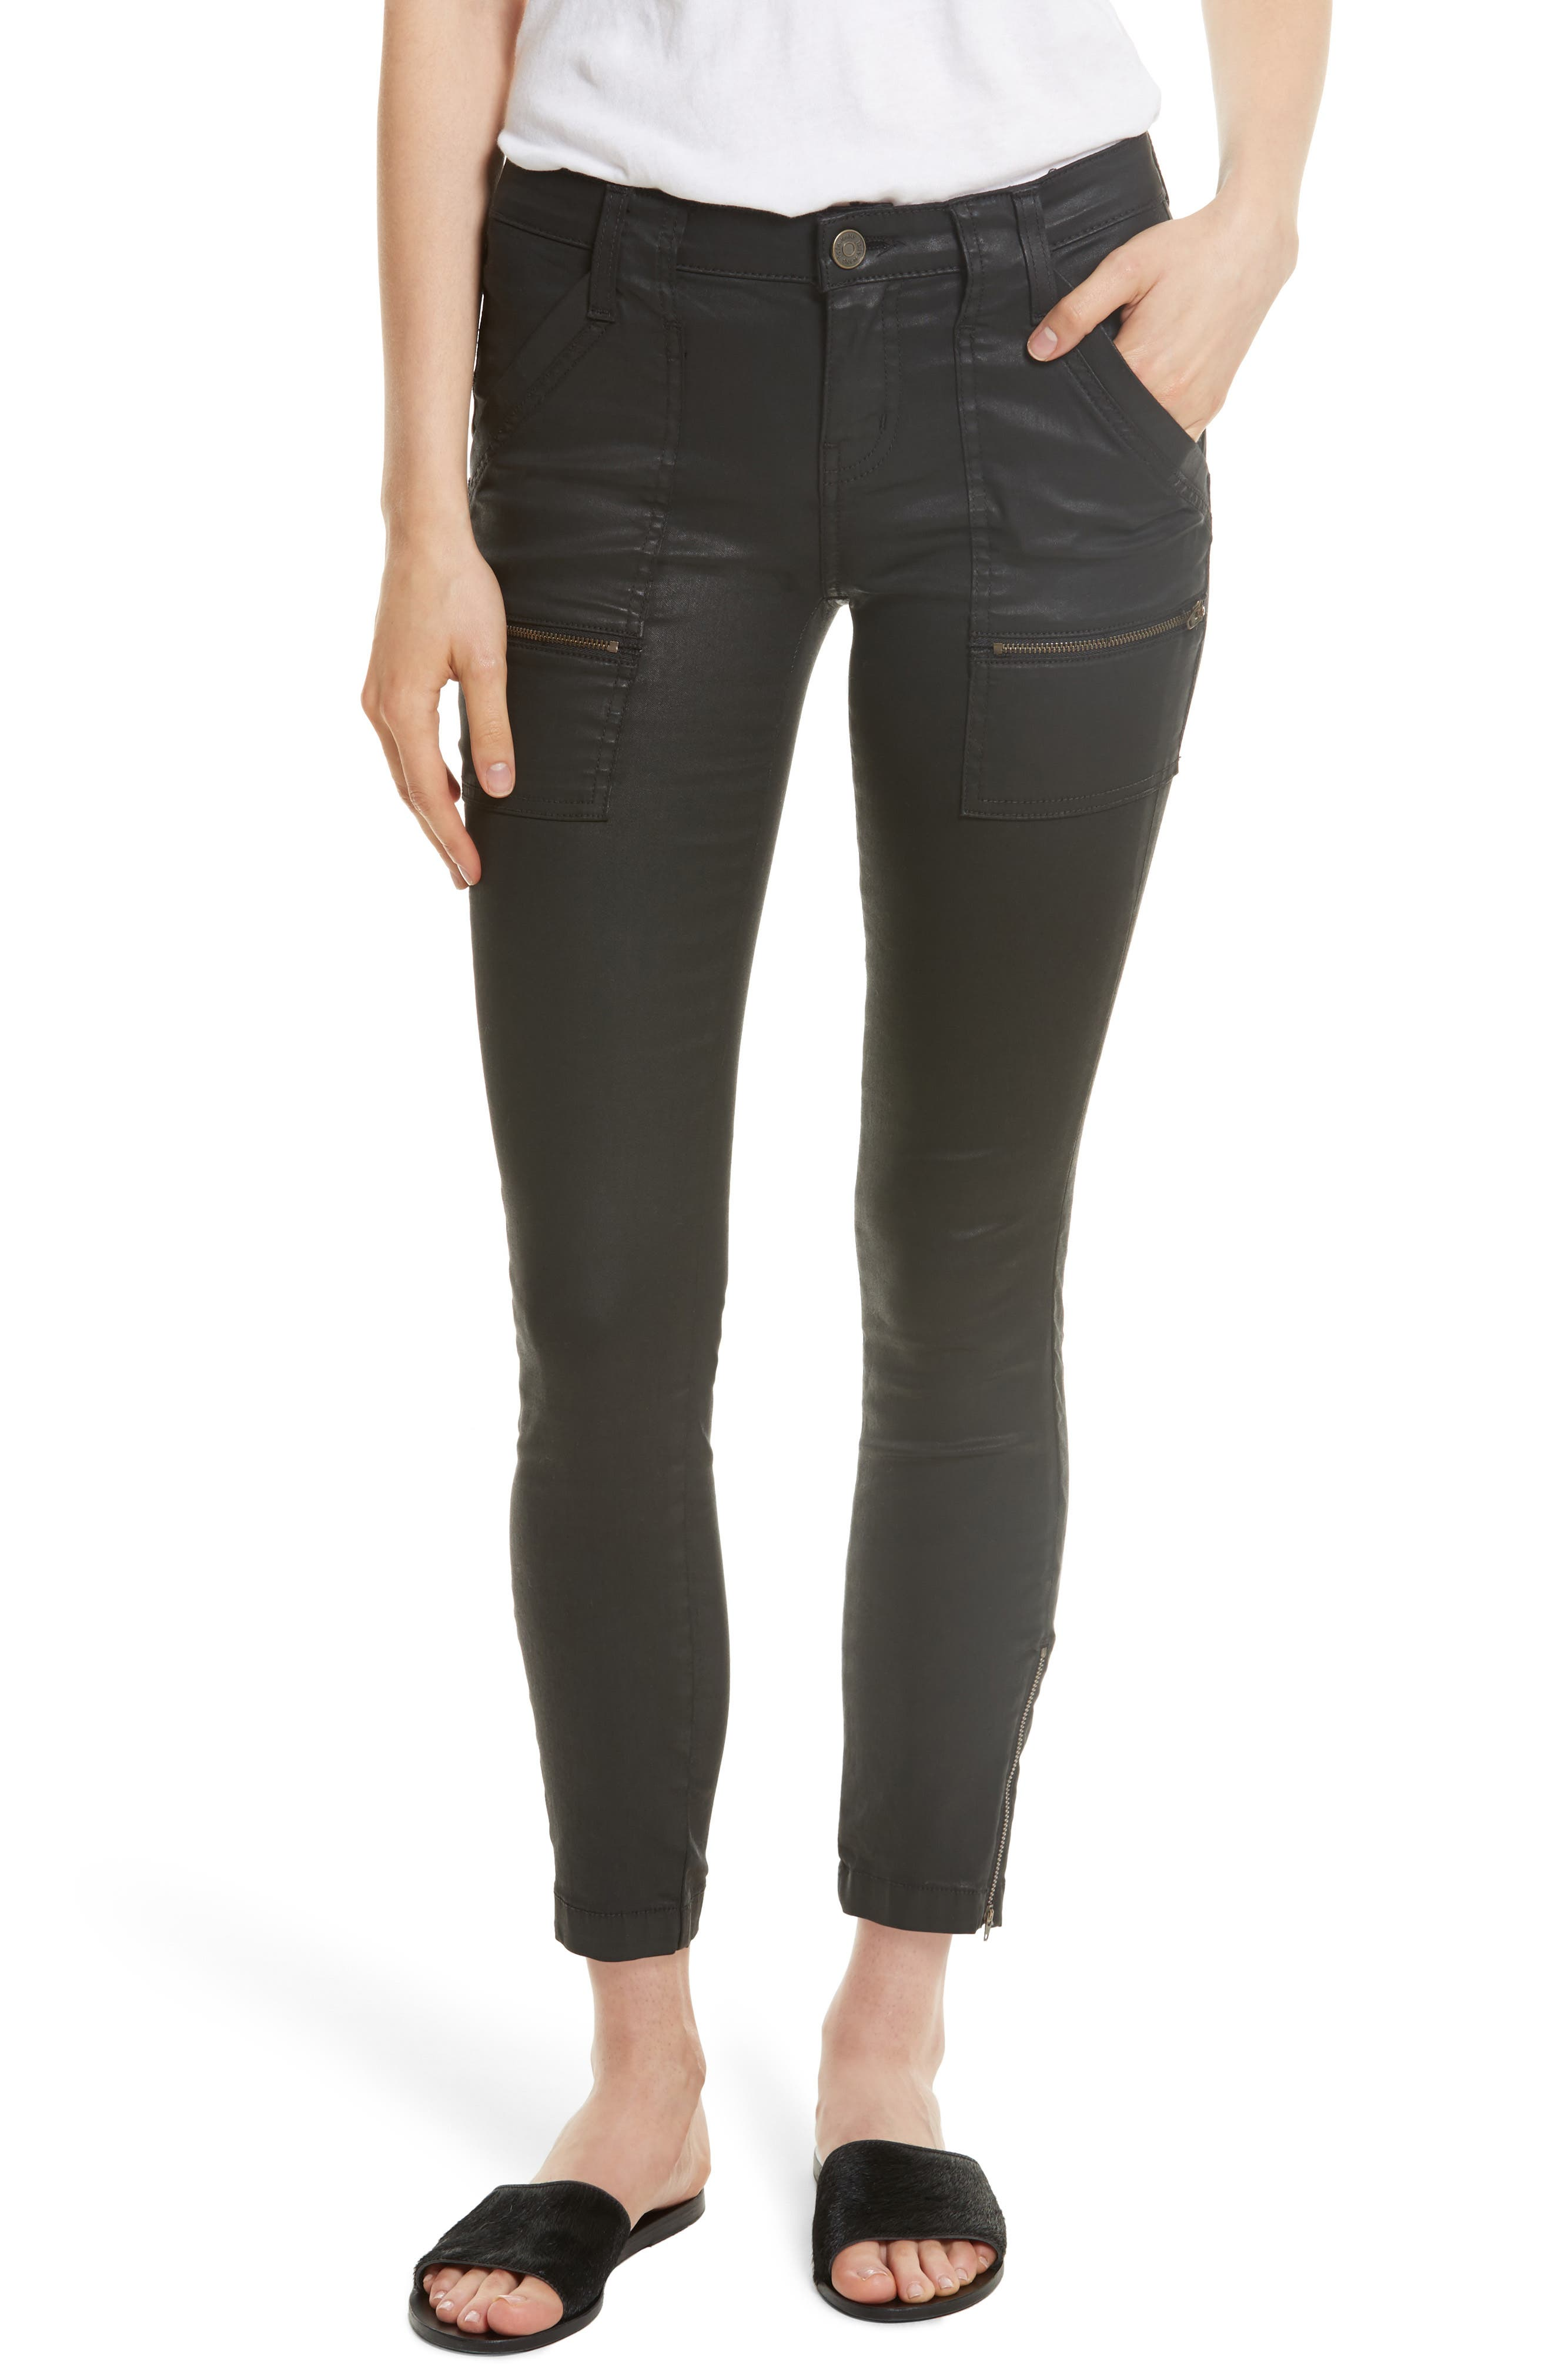 Park B Coated Skinny Jeans,                             Main thumbnail 1, color,                             002